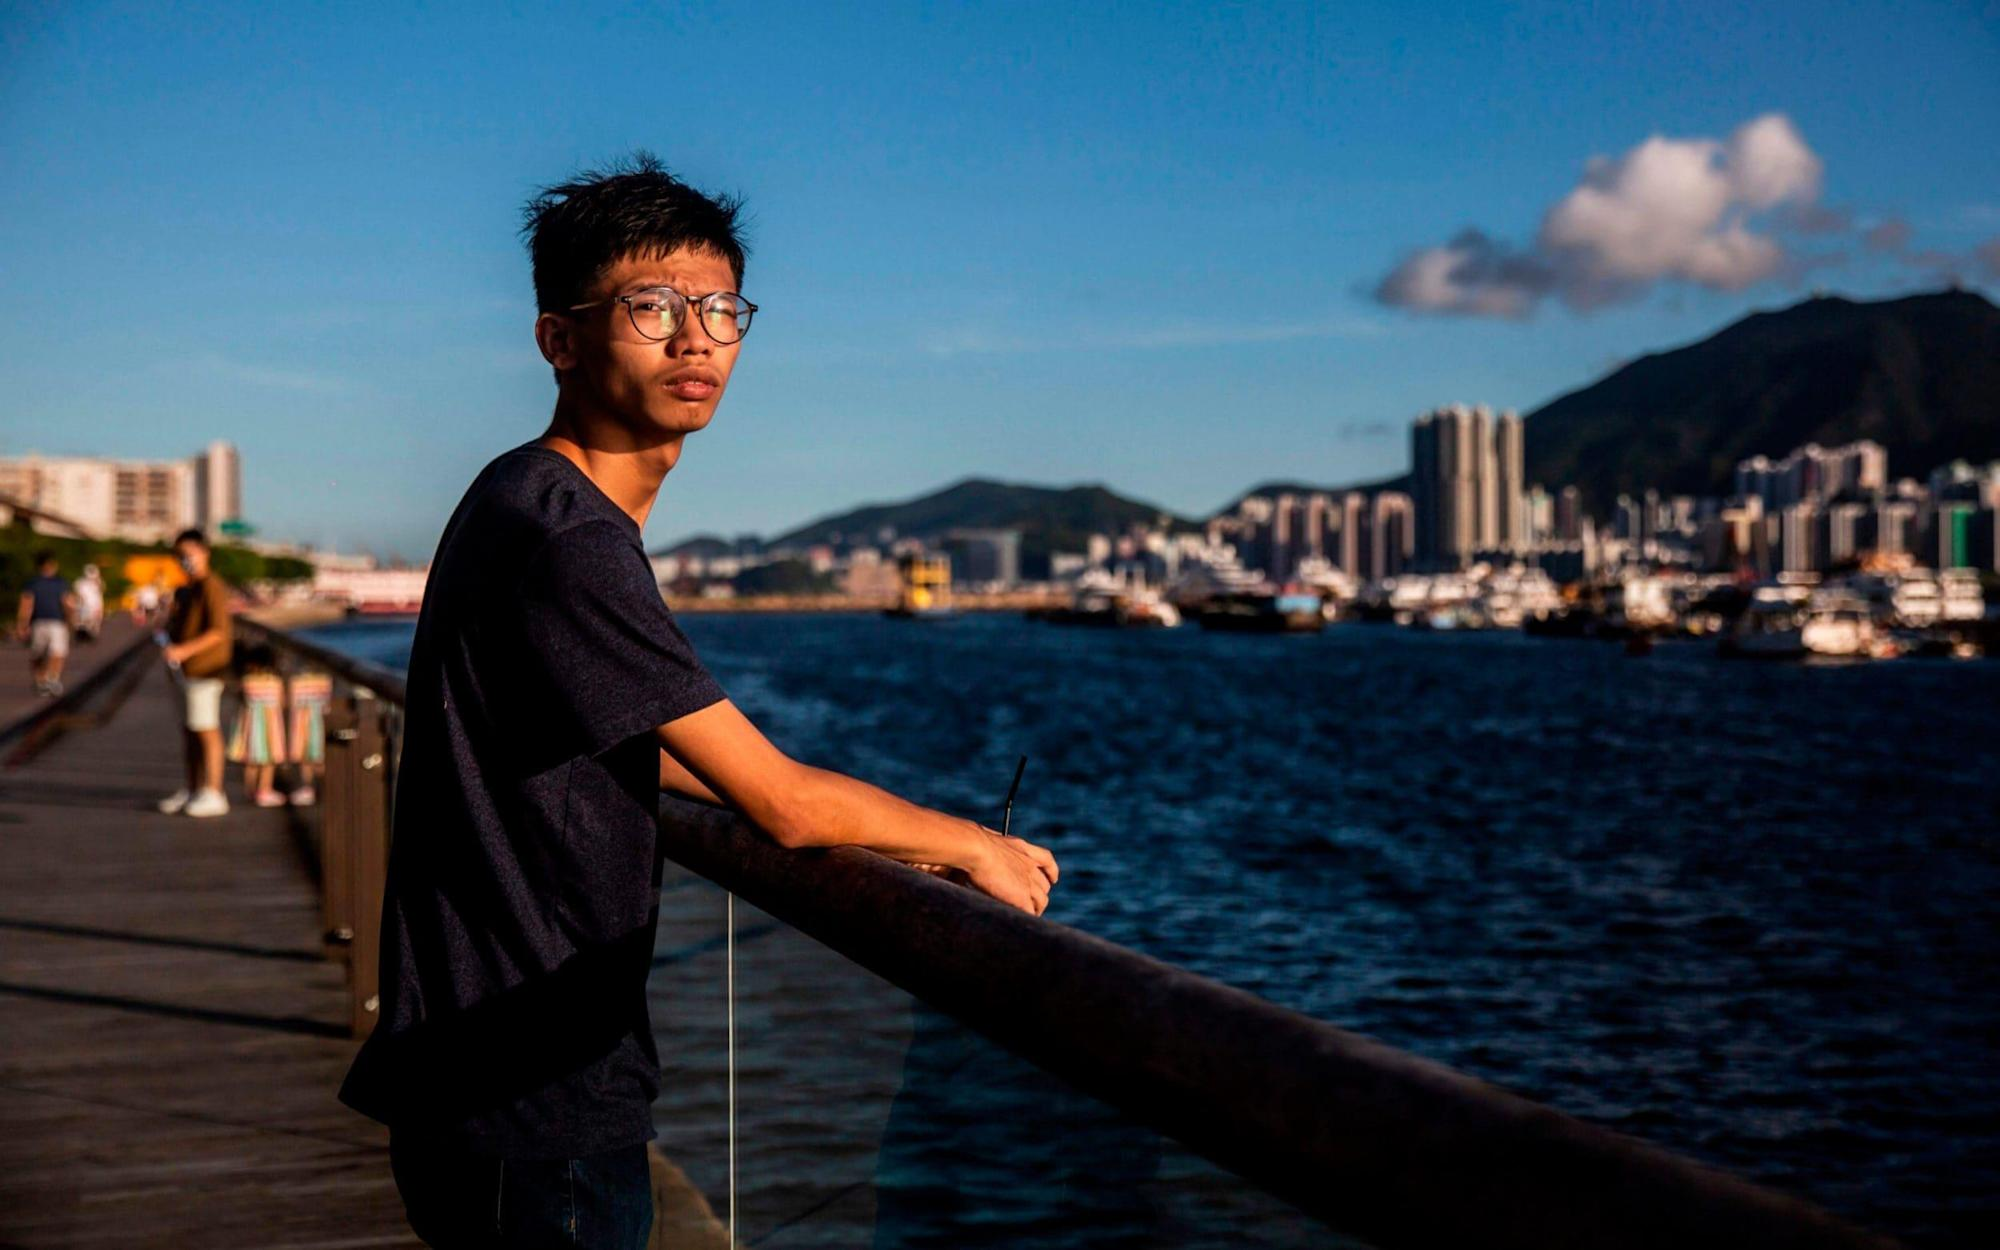 Hong Kong activist Tony Chung detained while trying to seek asylum at US consulate